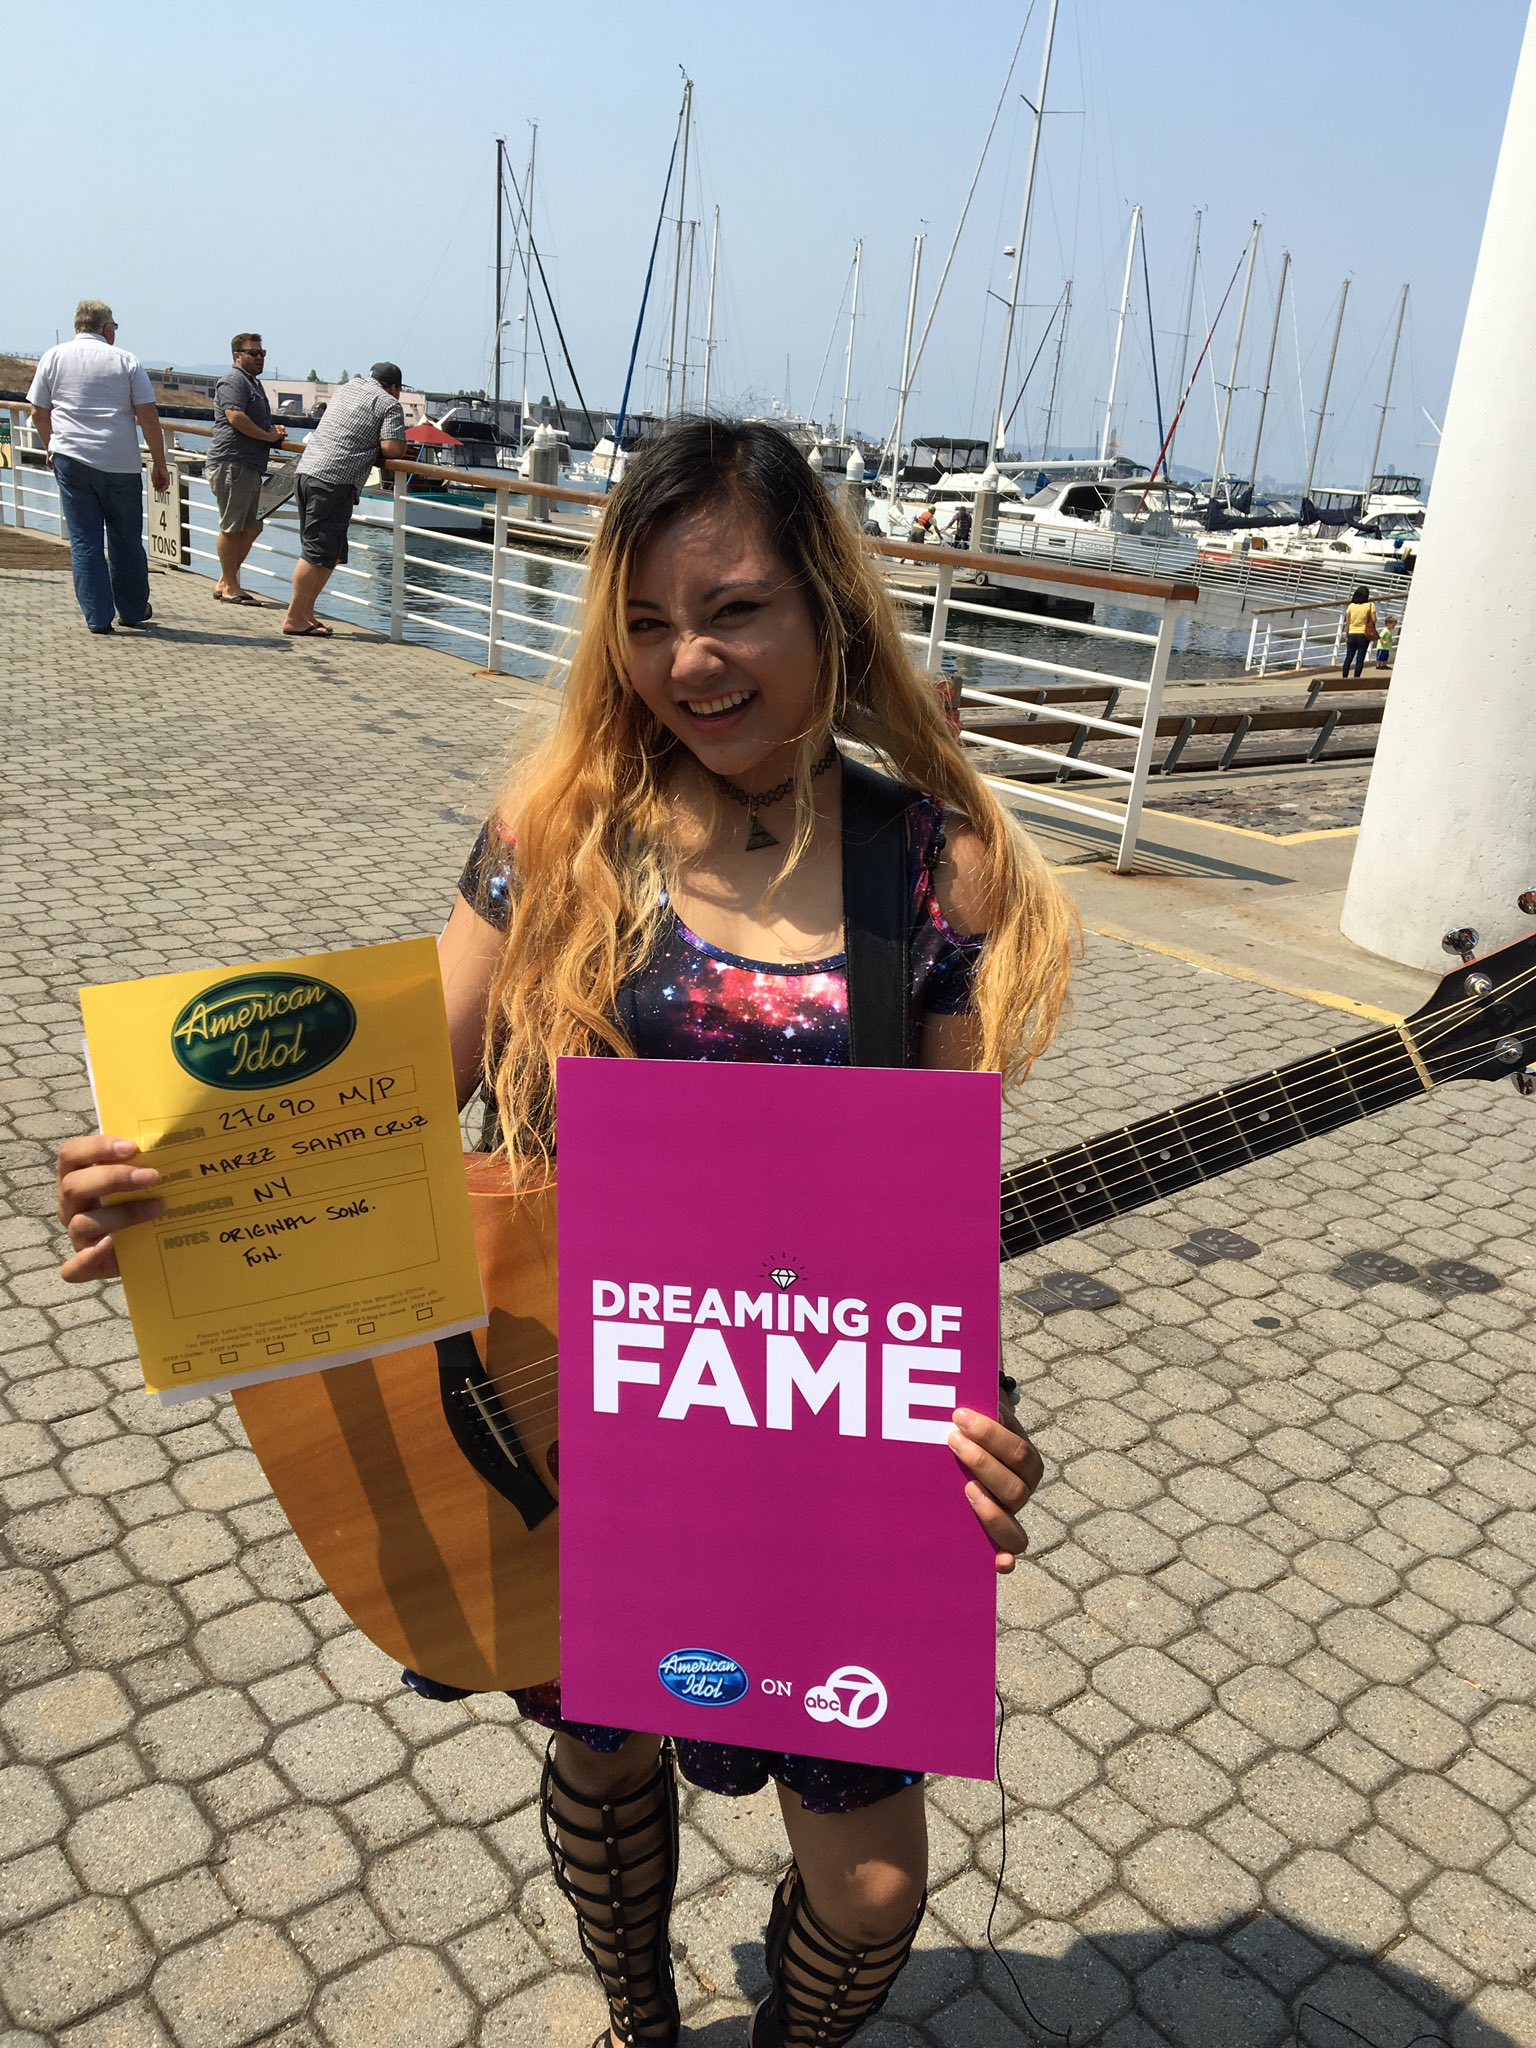 "<div class=""meta image-caption""><div class=""origin-logo origin-image none""><span>none</span></div><span class=""caption-text"">An ""American Idol"" hopeful holds up her golden ticket after passing a round of auditions in Oakland, Calif. on Sunday, Aug. 20, 2017. (KGO-TV)</span></div>"